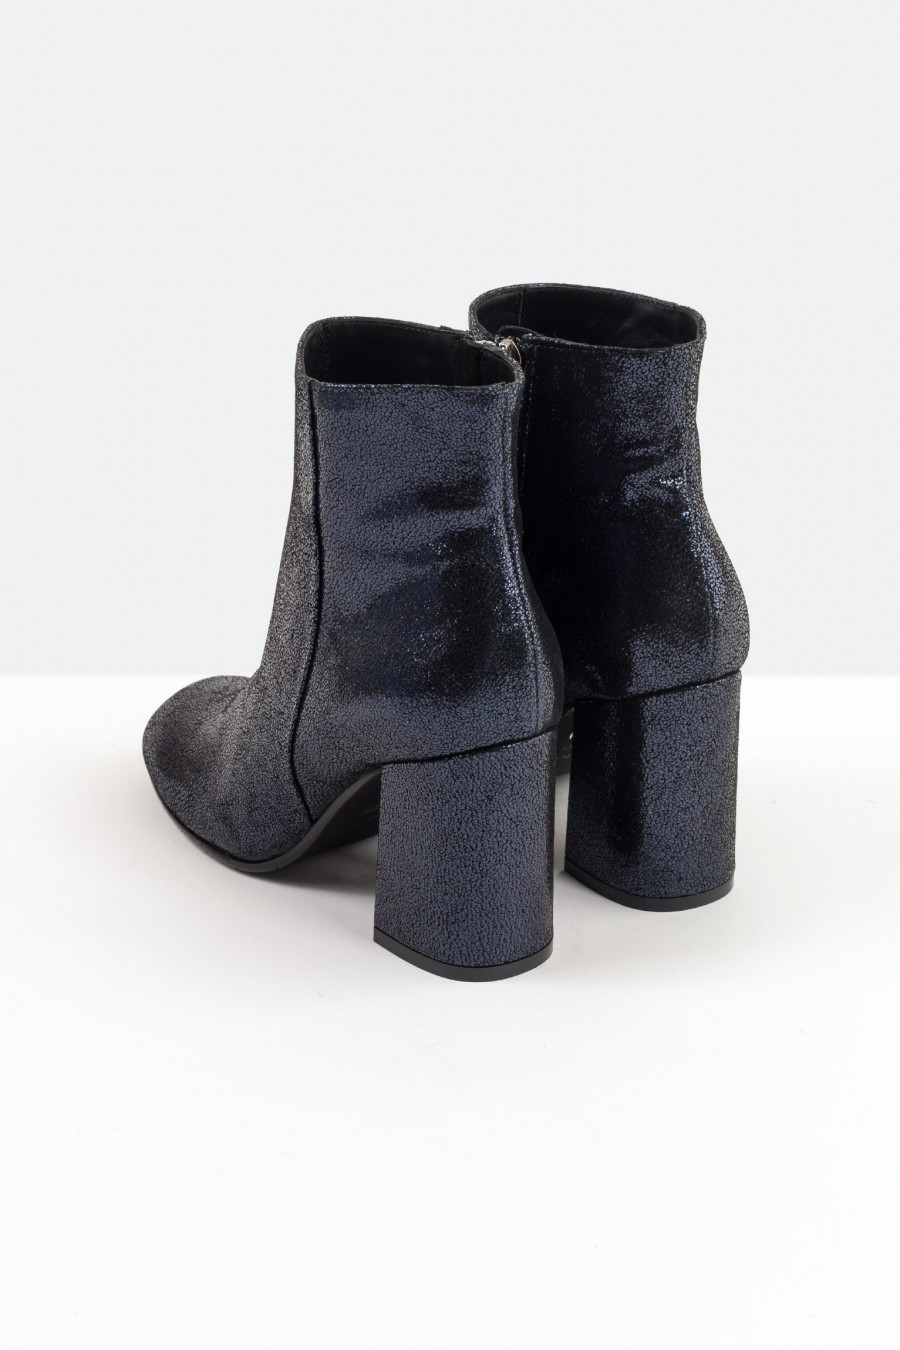 Blue leather ankle boots with high heels